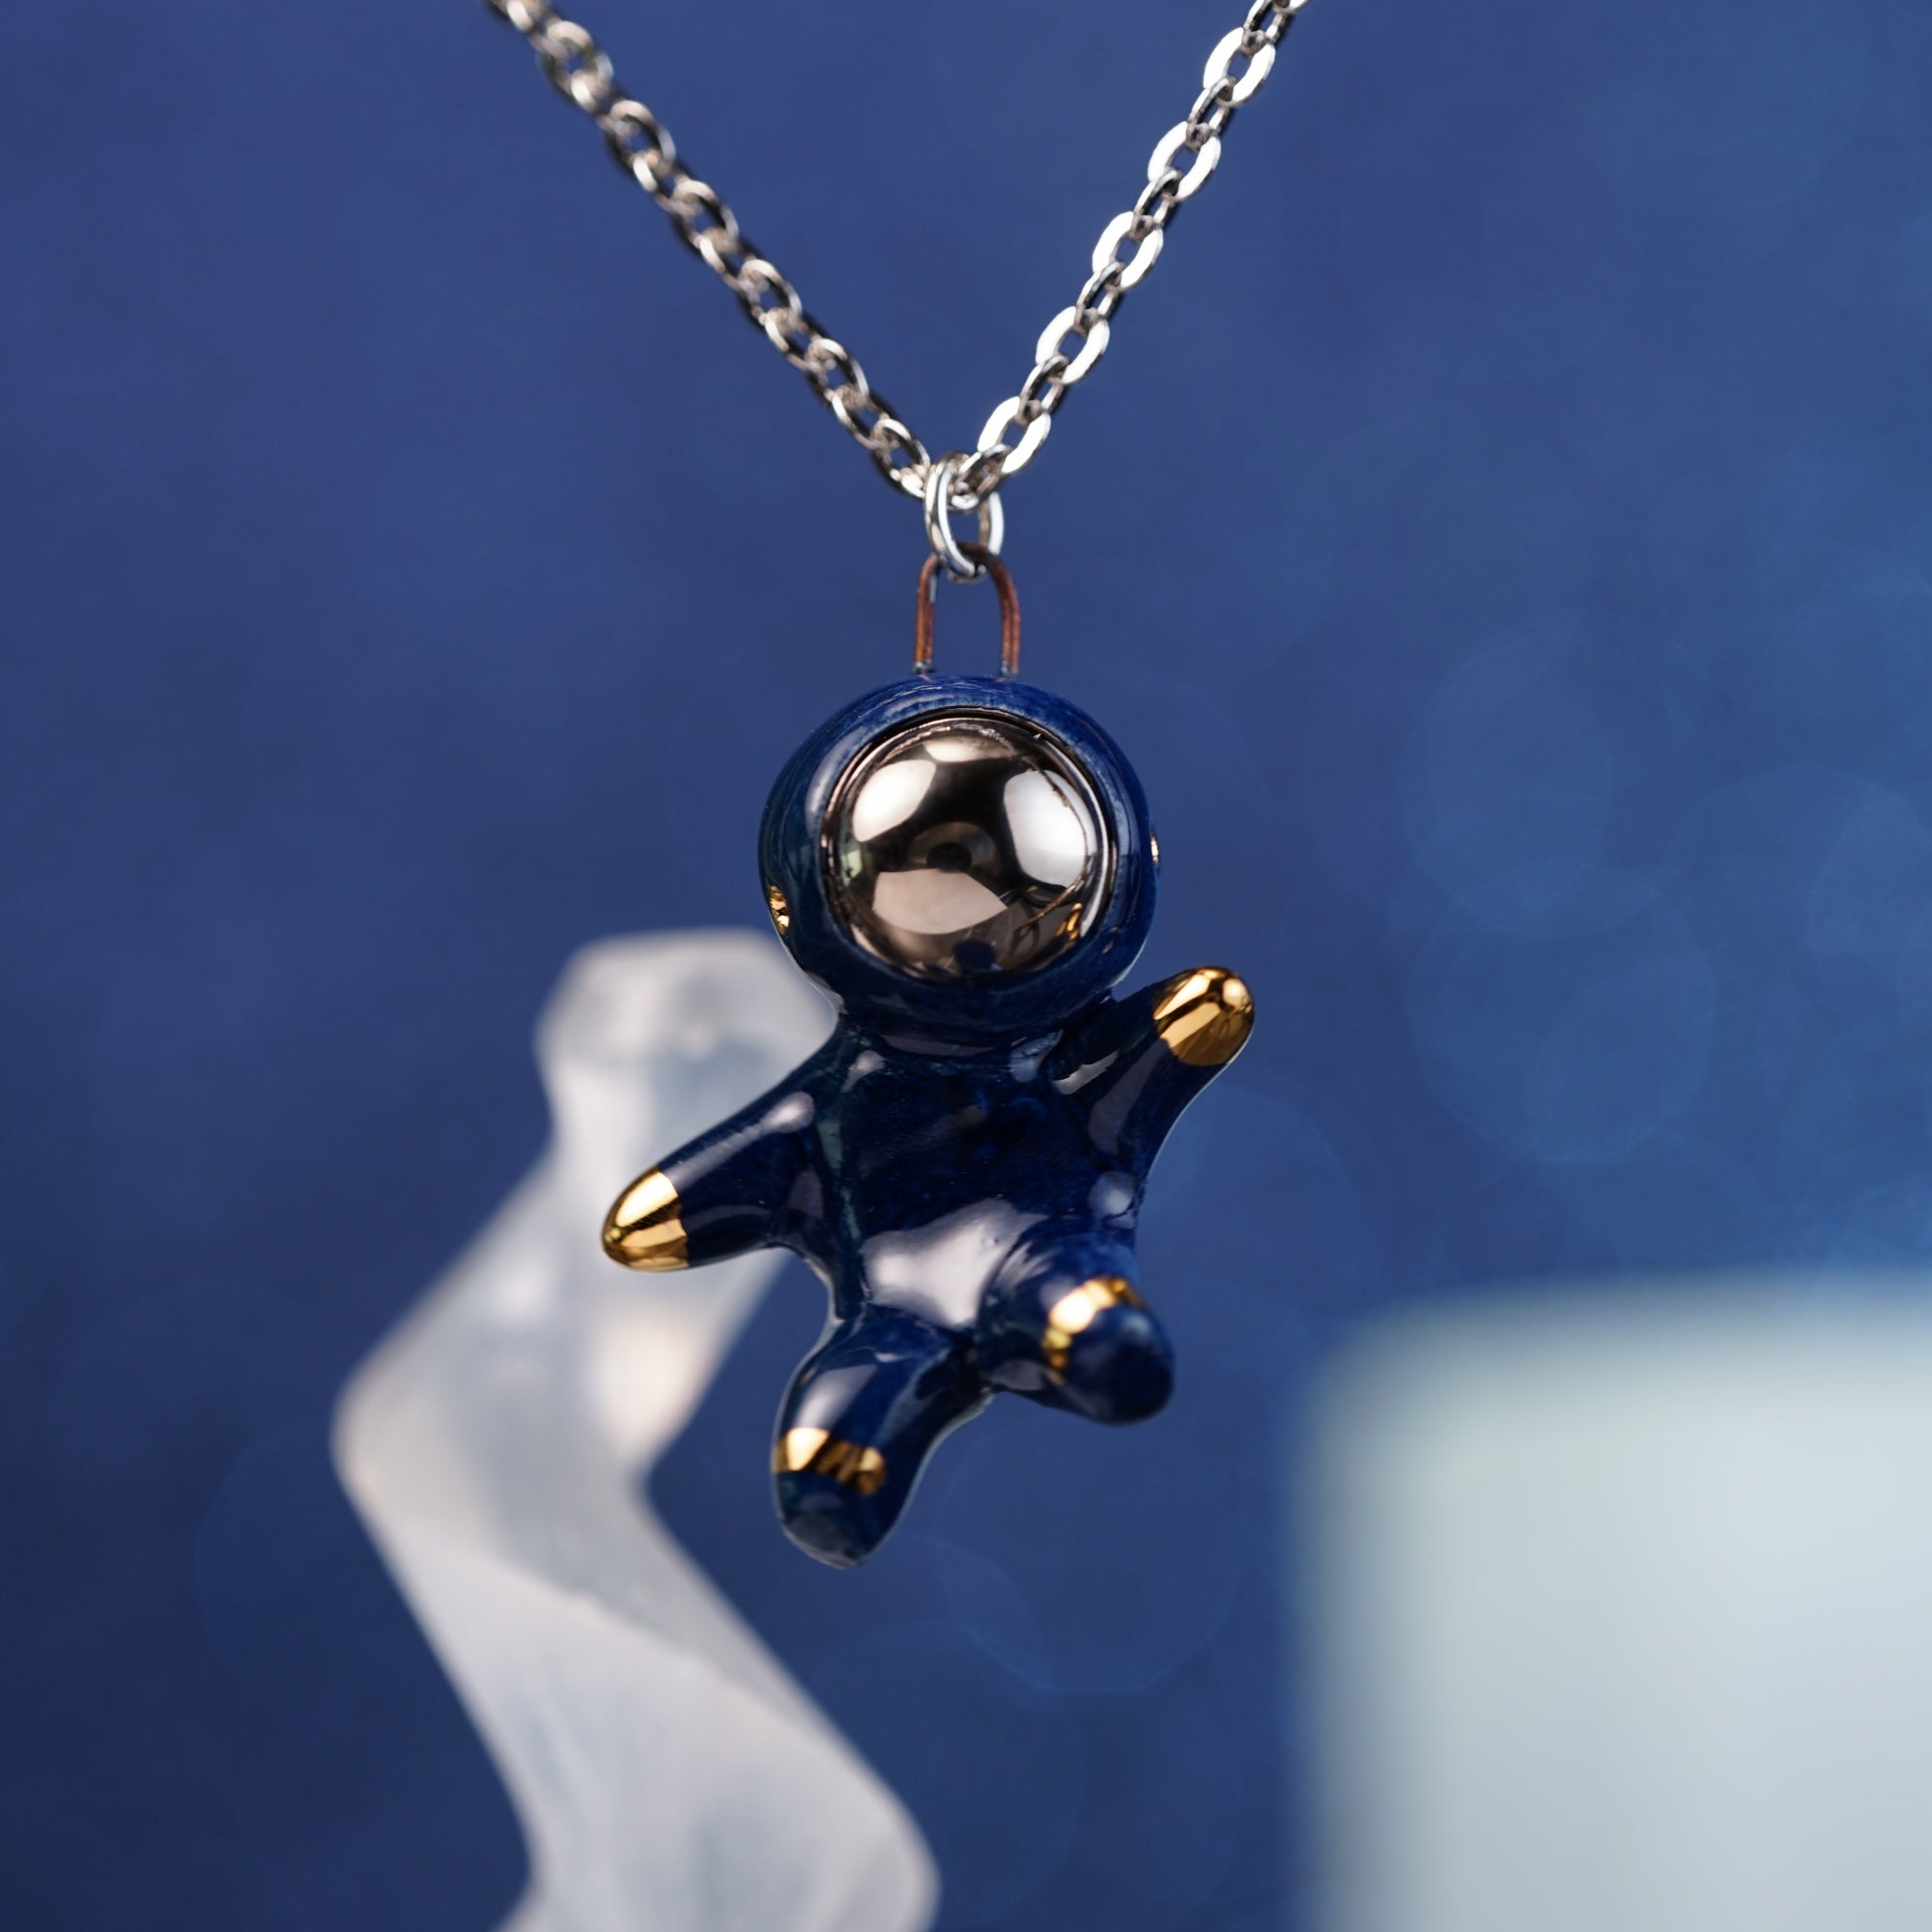 Floating Astronaut Necklace